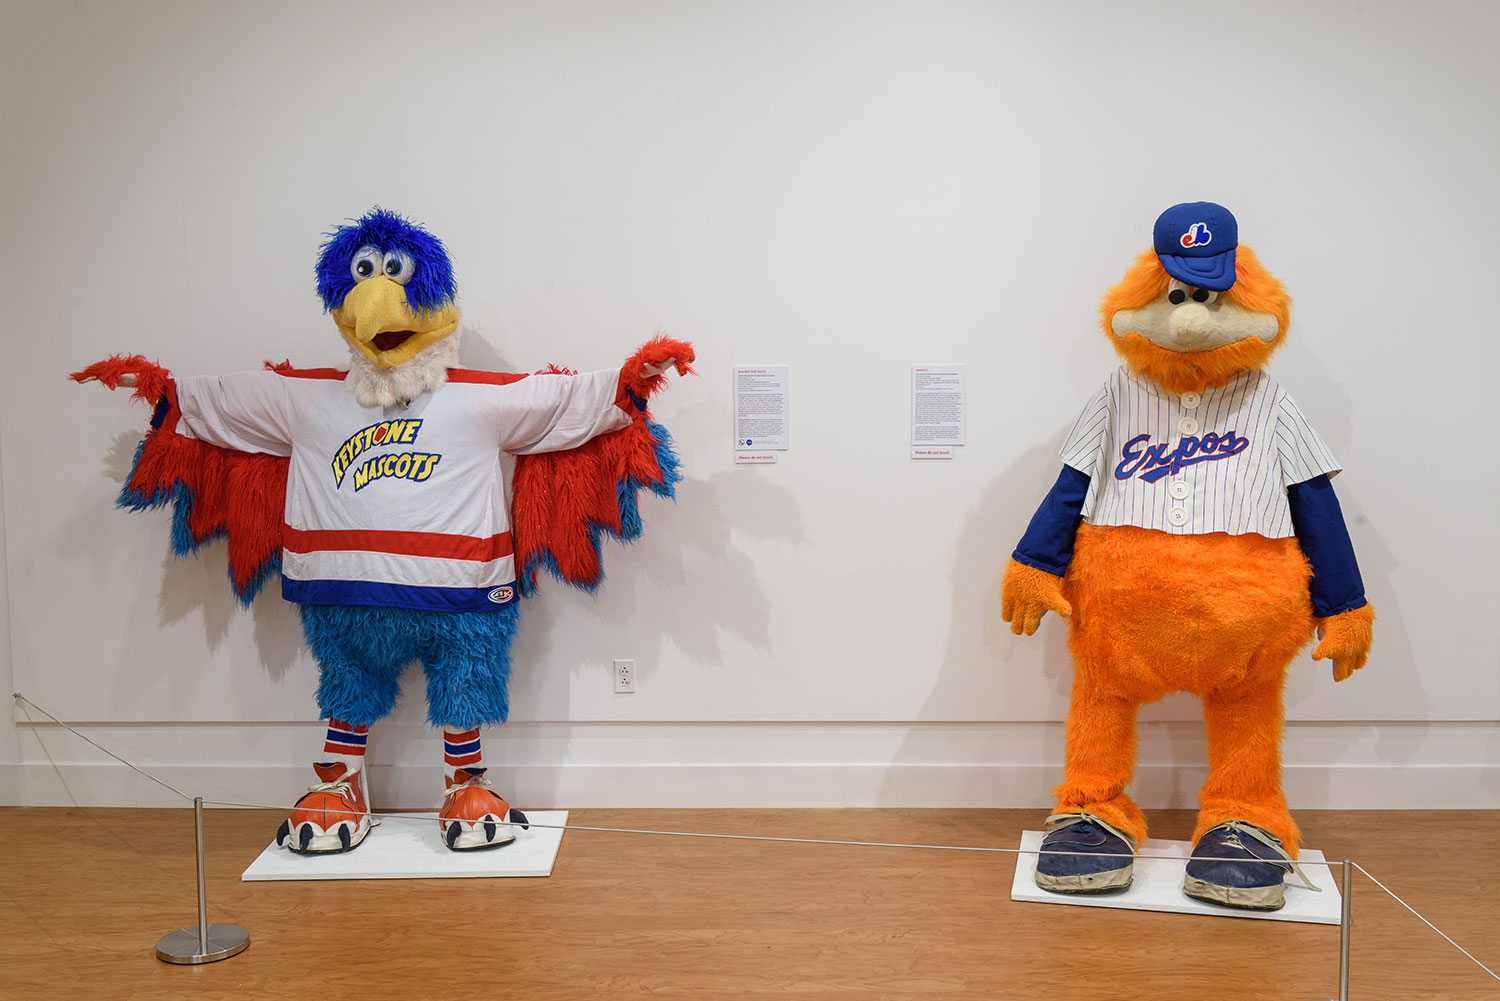 Mascots!' Exhibit Asks Why We Care So Much About These Fuzzy